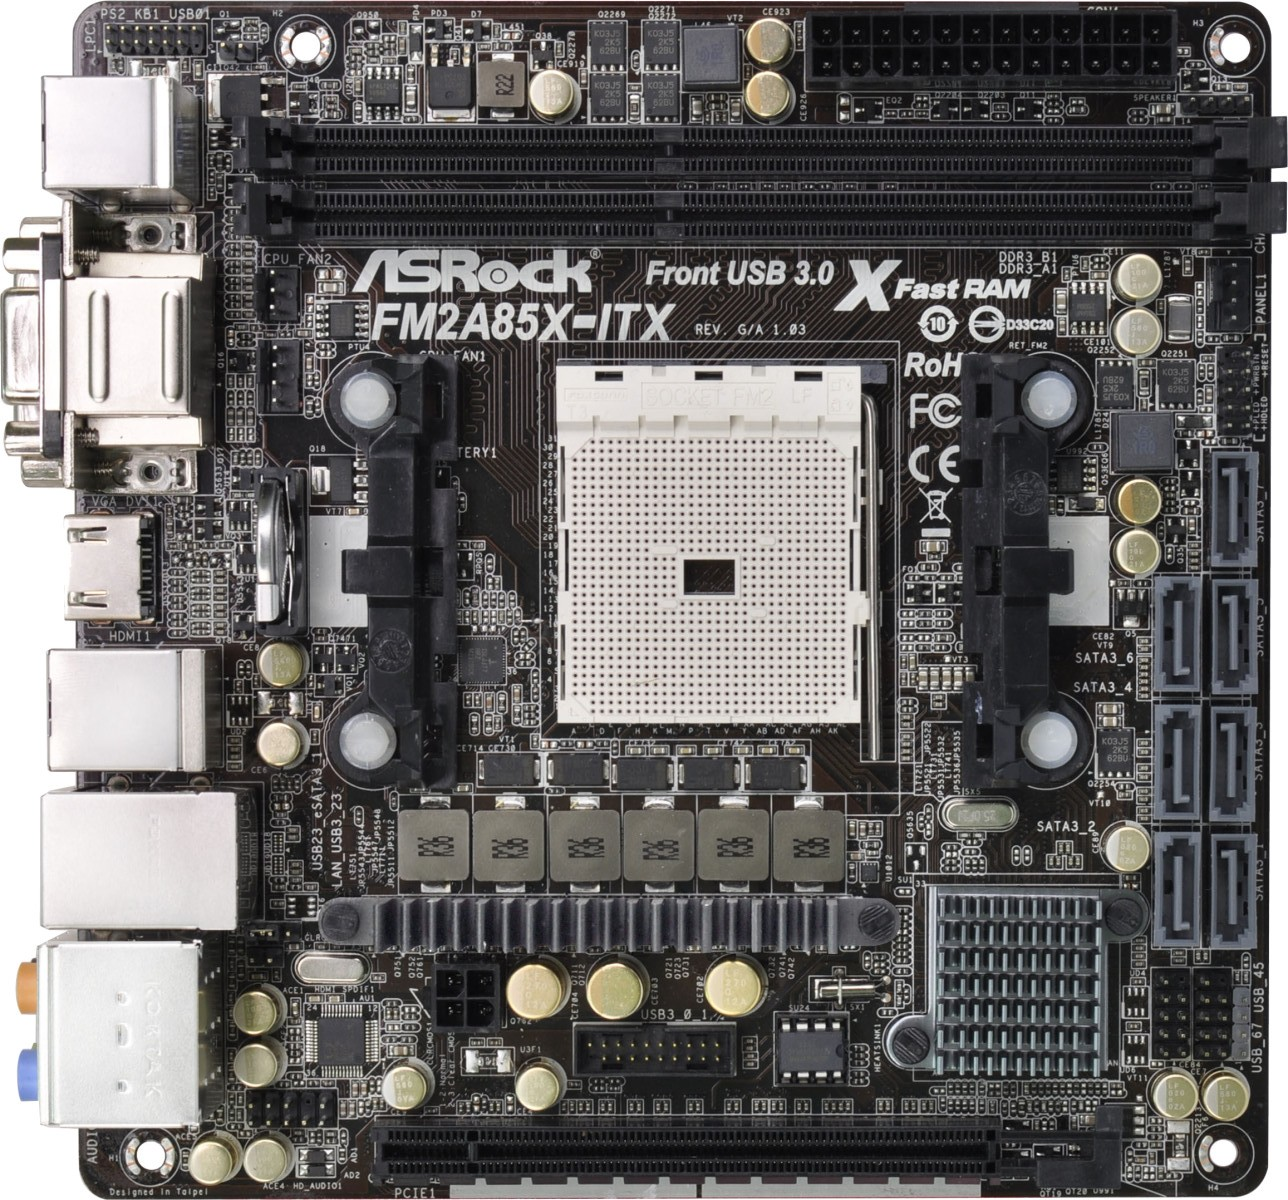 ASROCK FM2A75M-ITX AMD ALL-IN-ONE DRIVER WINDOWS 7